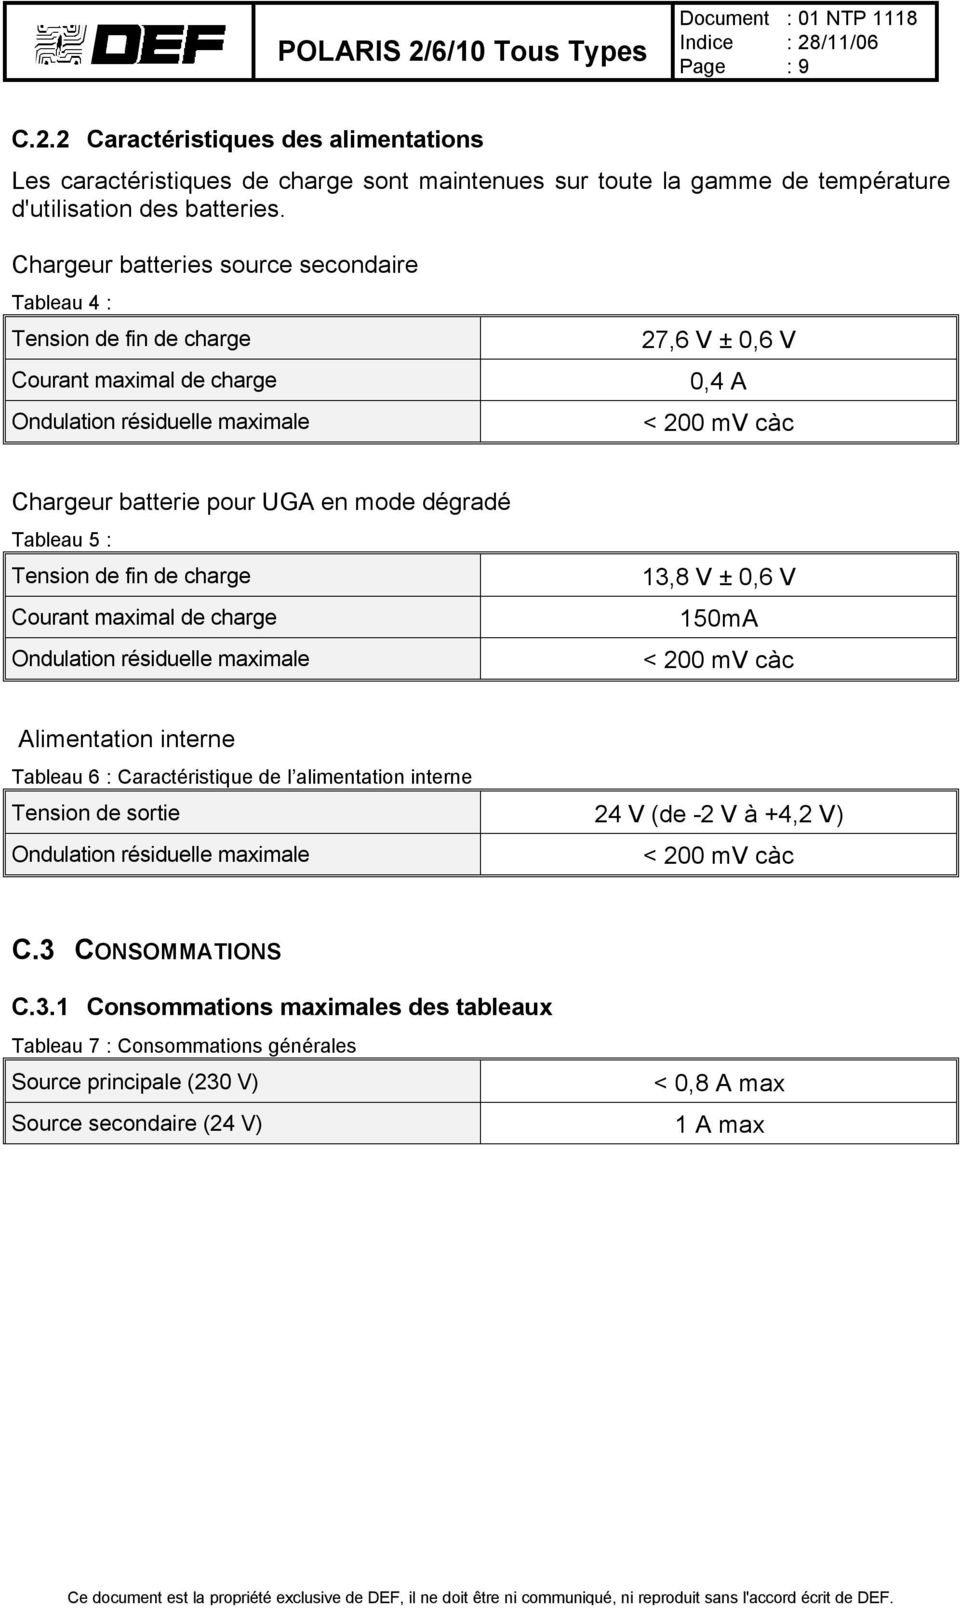 dégradé Tableau 5 : Tension de fin de charge Courant maximal de charge Ondulation résiduelle maximale 13,8 V ± 0,6 V 150mA < 200 mv càc Alimentation interne Tableau 6 : Caractéristique de l